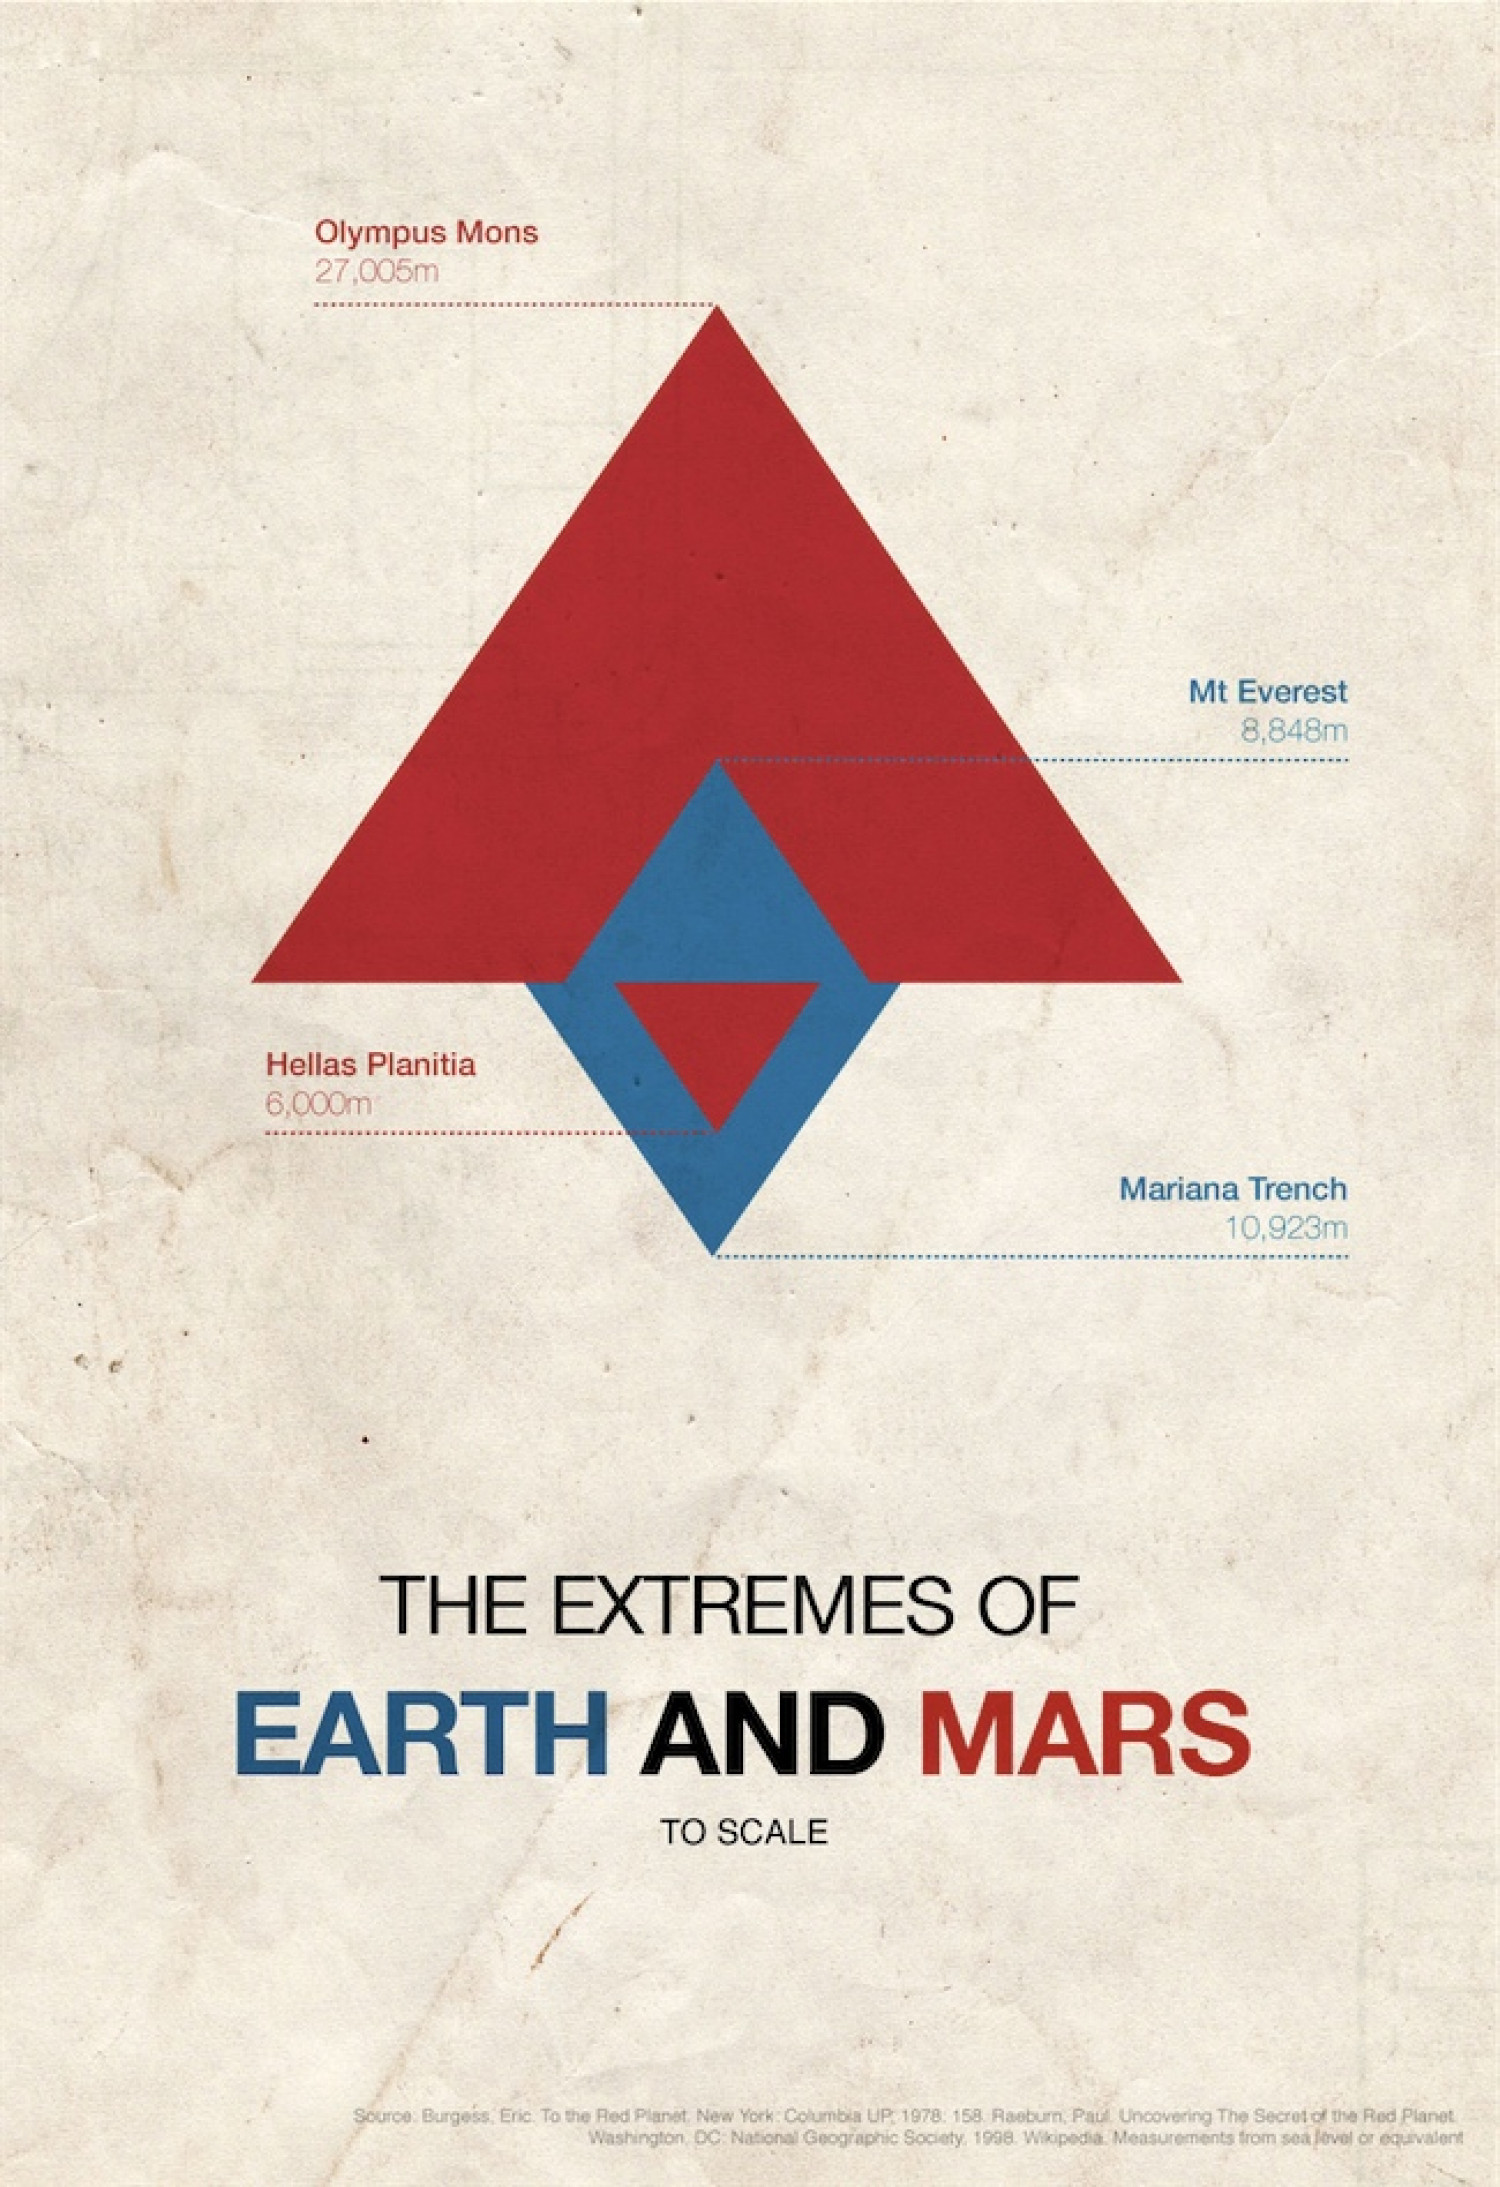 The Extremes of Earth and Mars to Scale Infographic